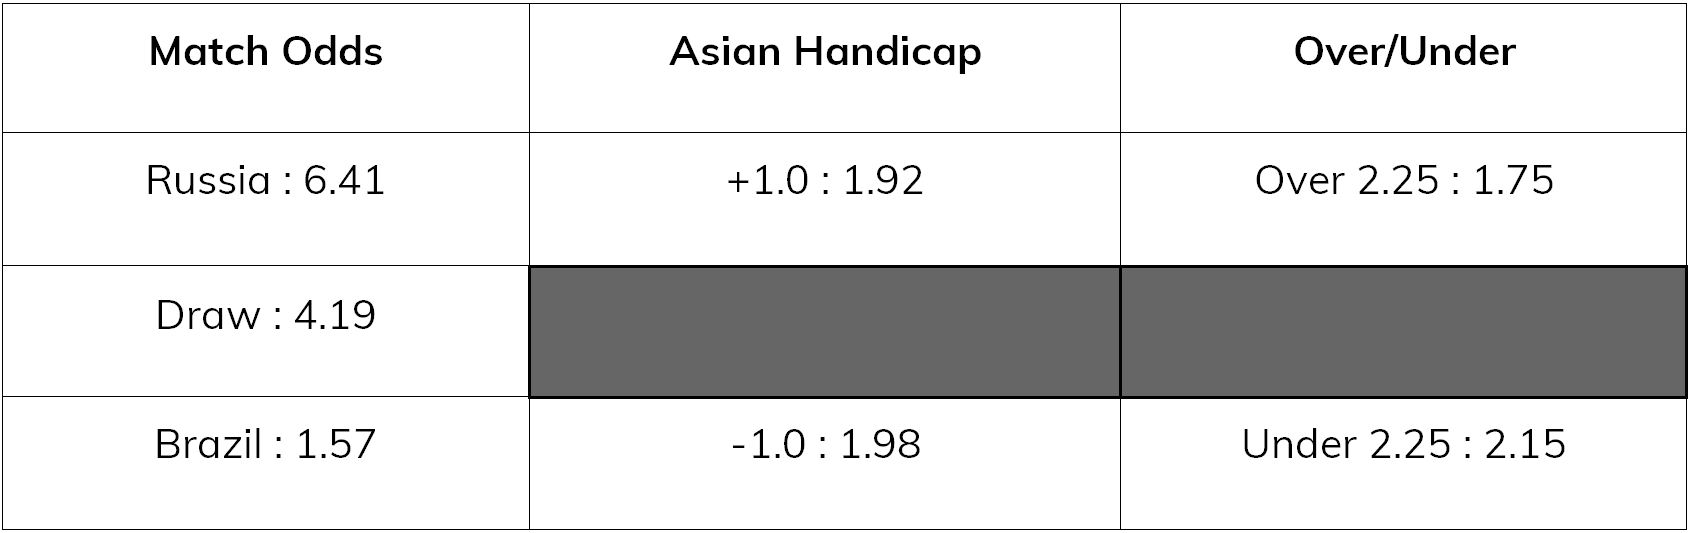 spain-v-russia-asian-handicap-010718-eastbridge5